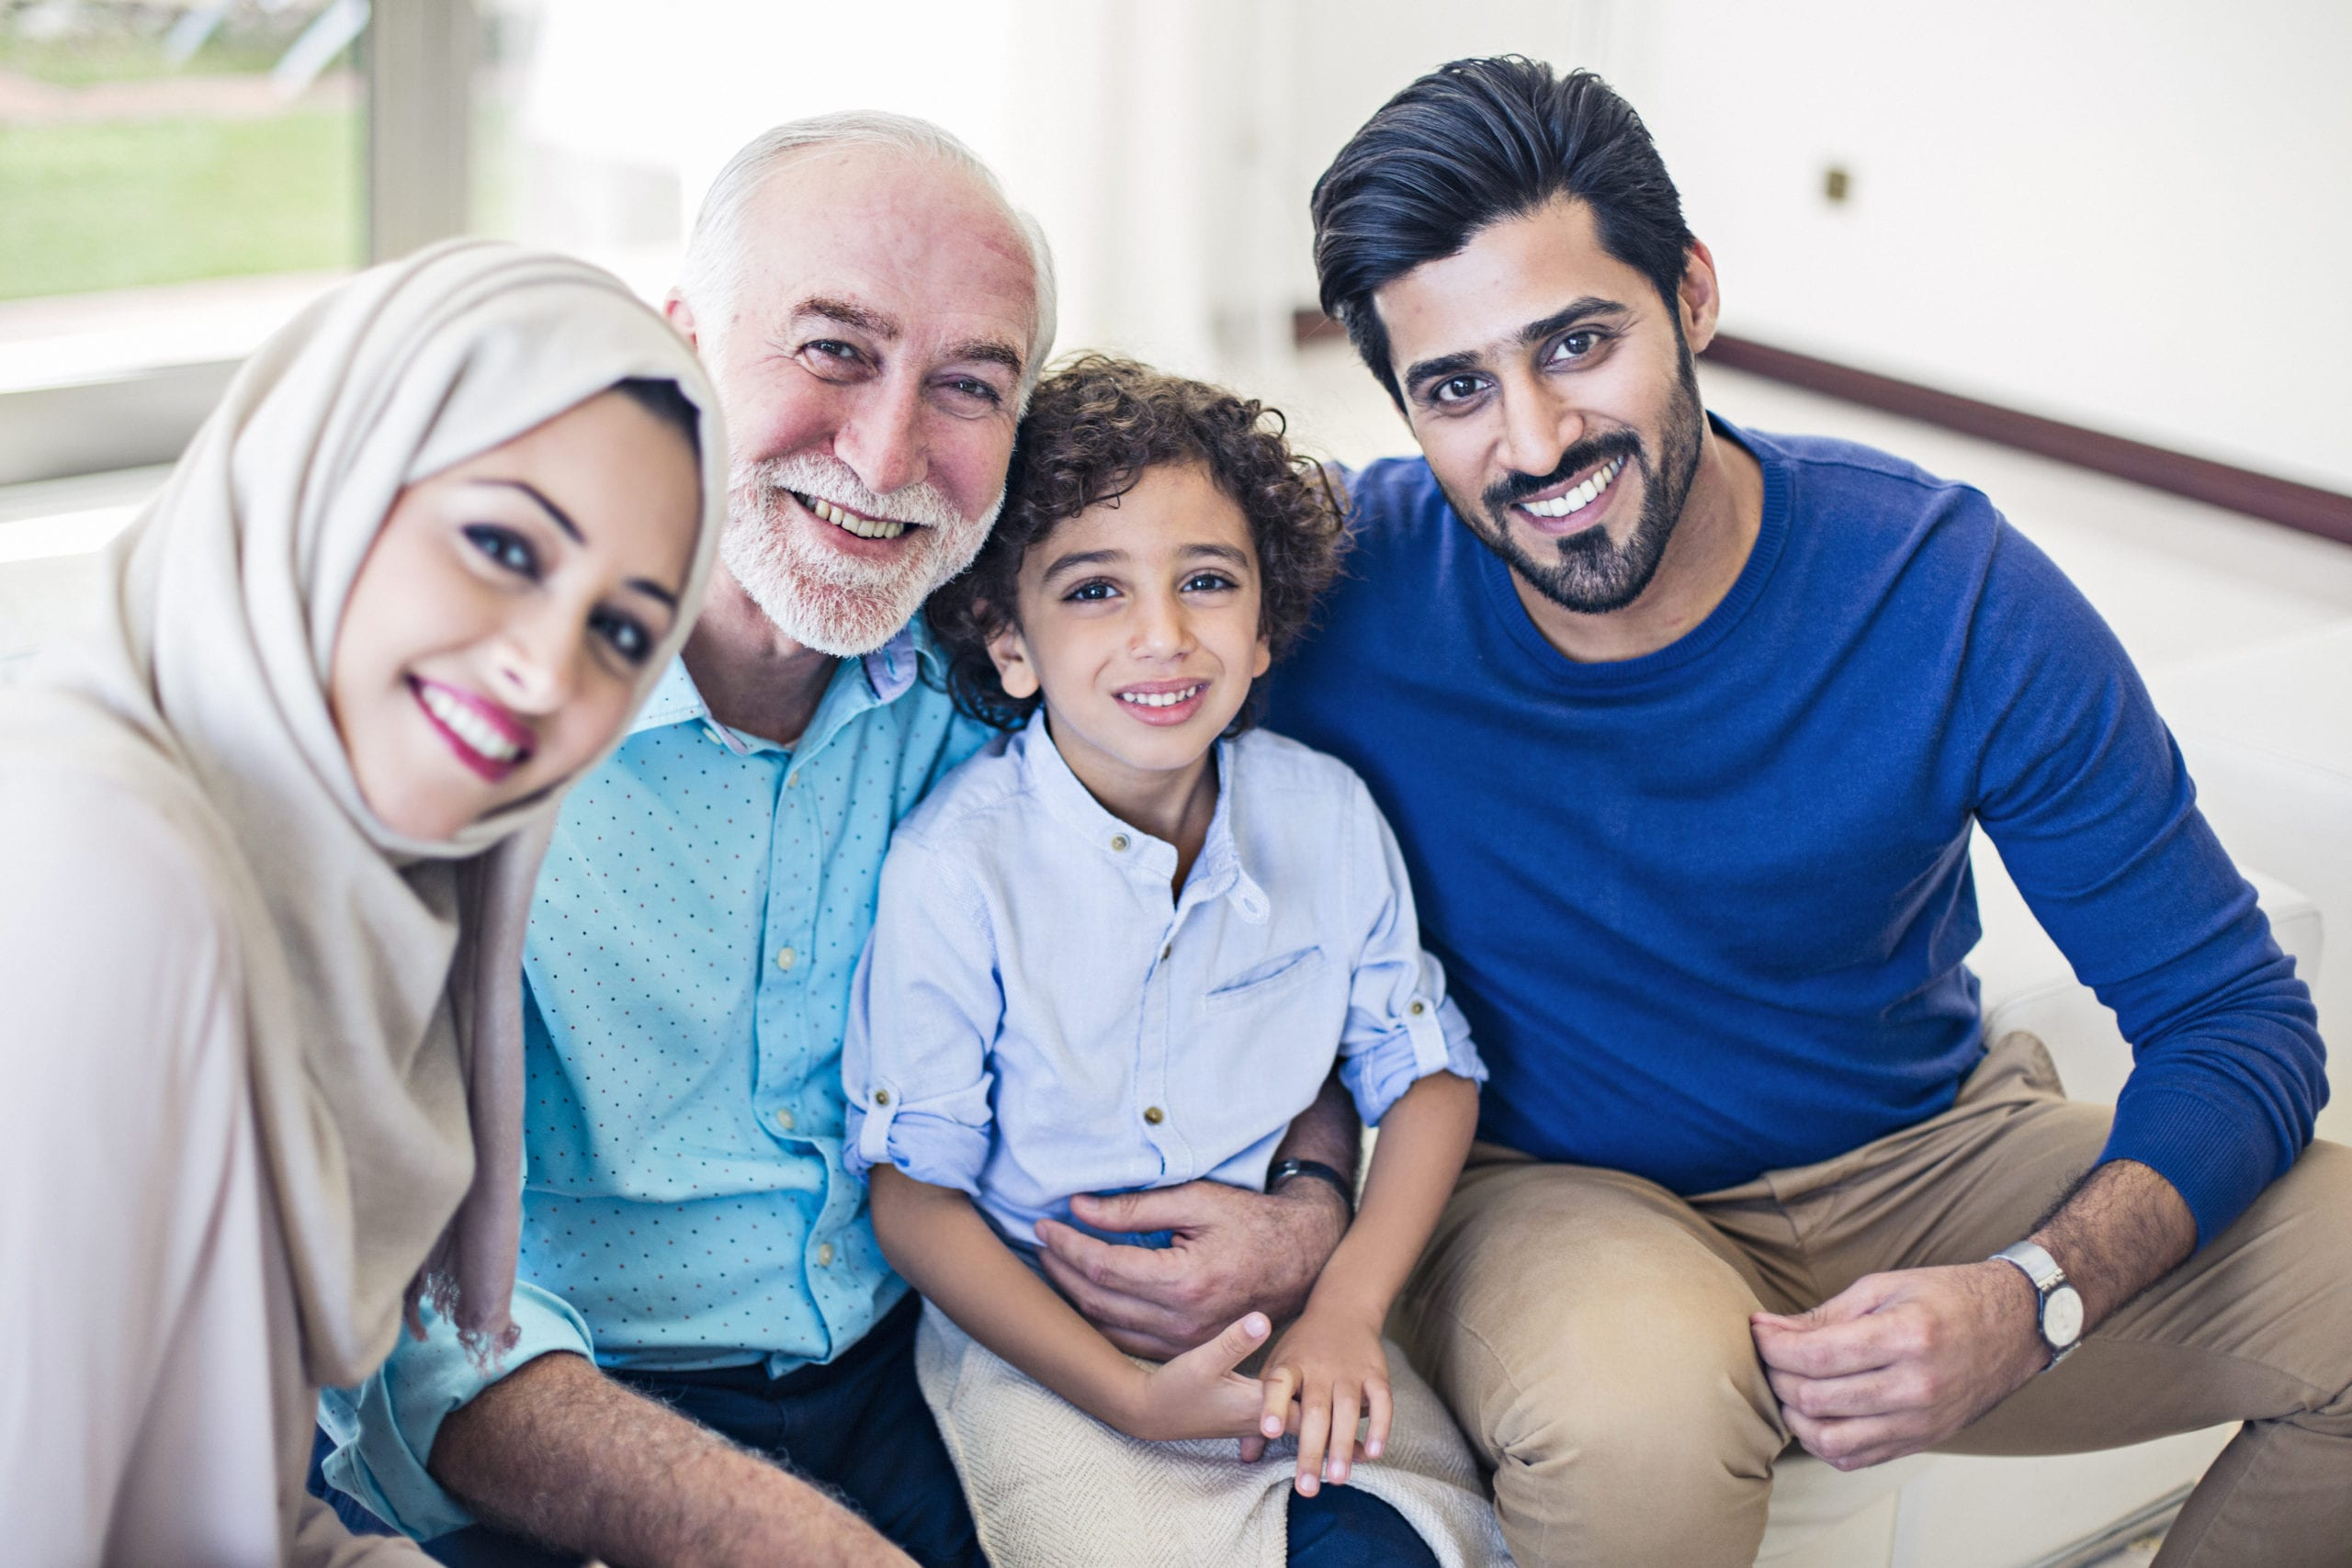 Muslim family portrait, kid, parents and grandfather all looking at the camera.